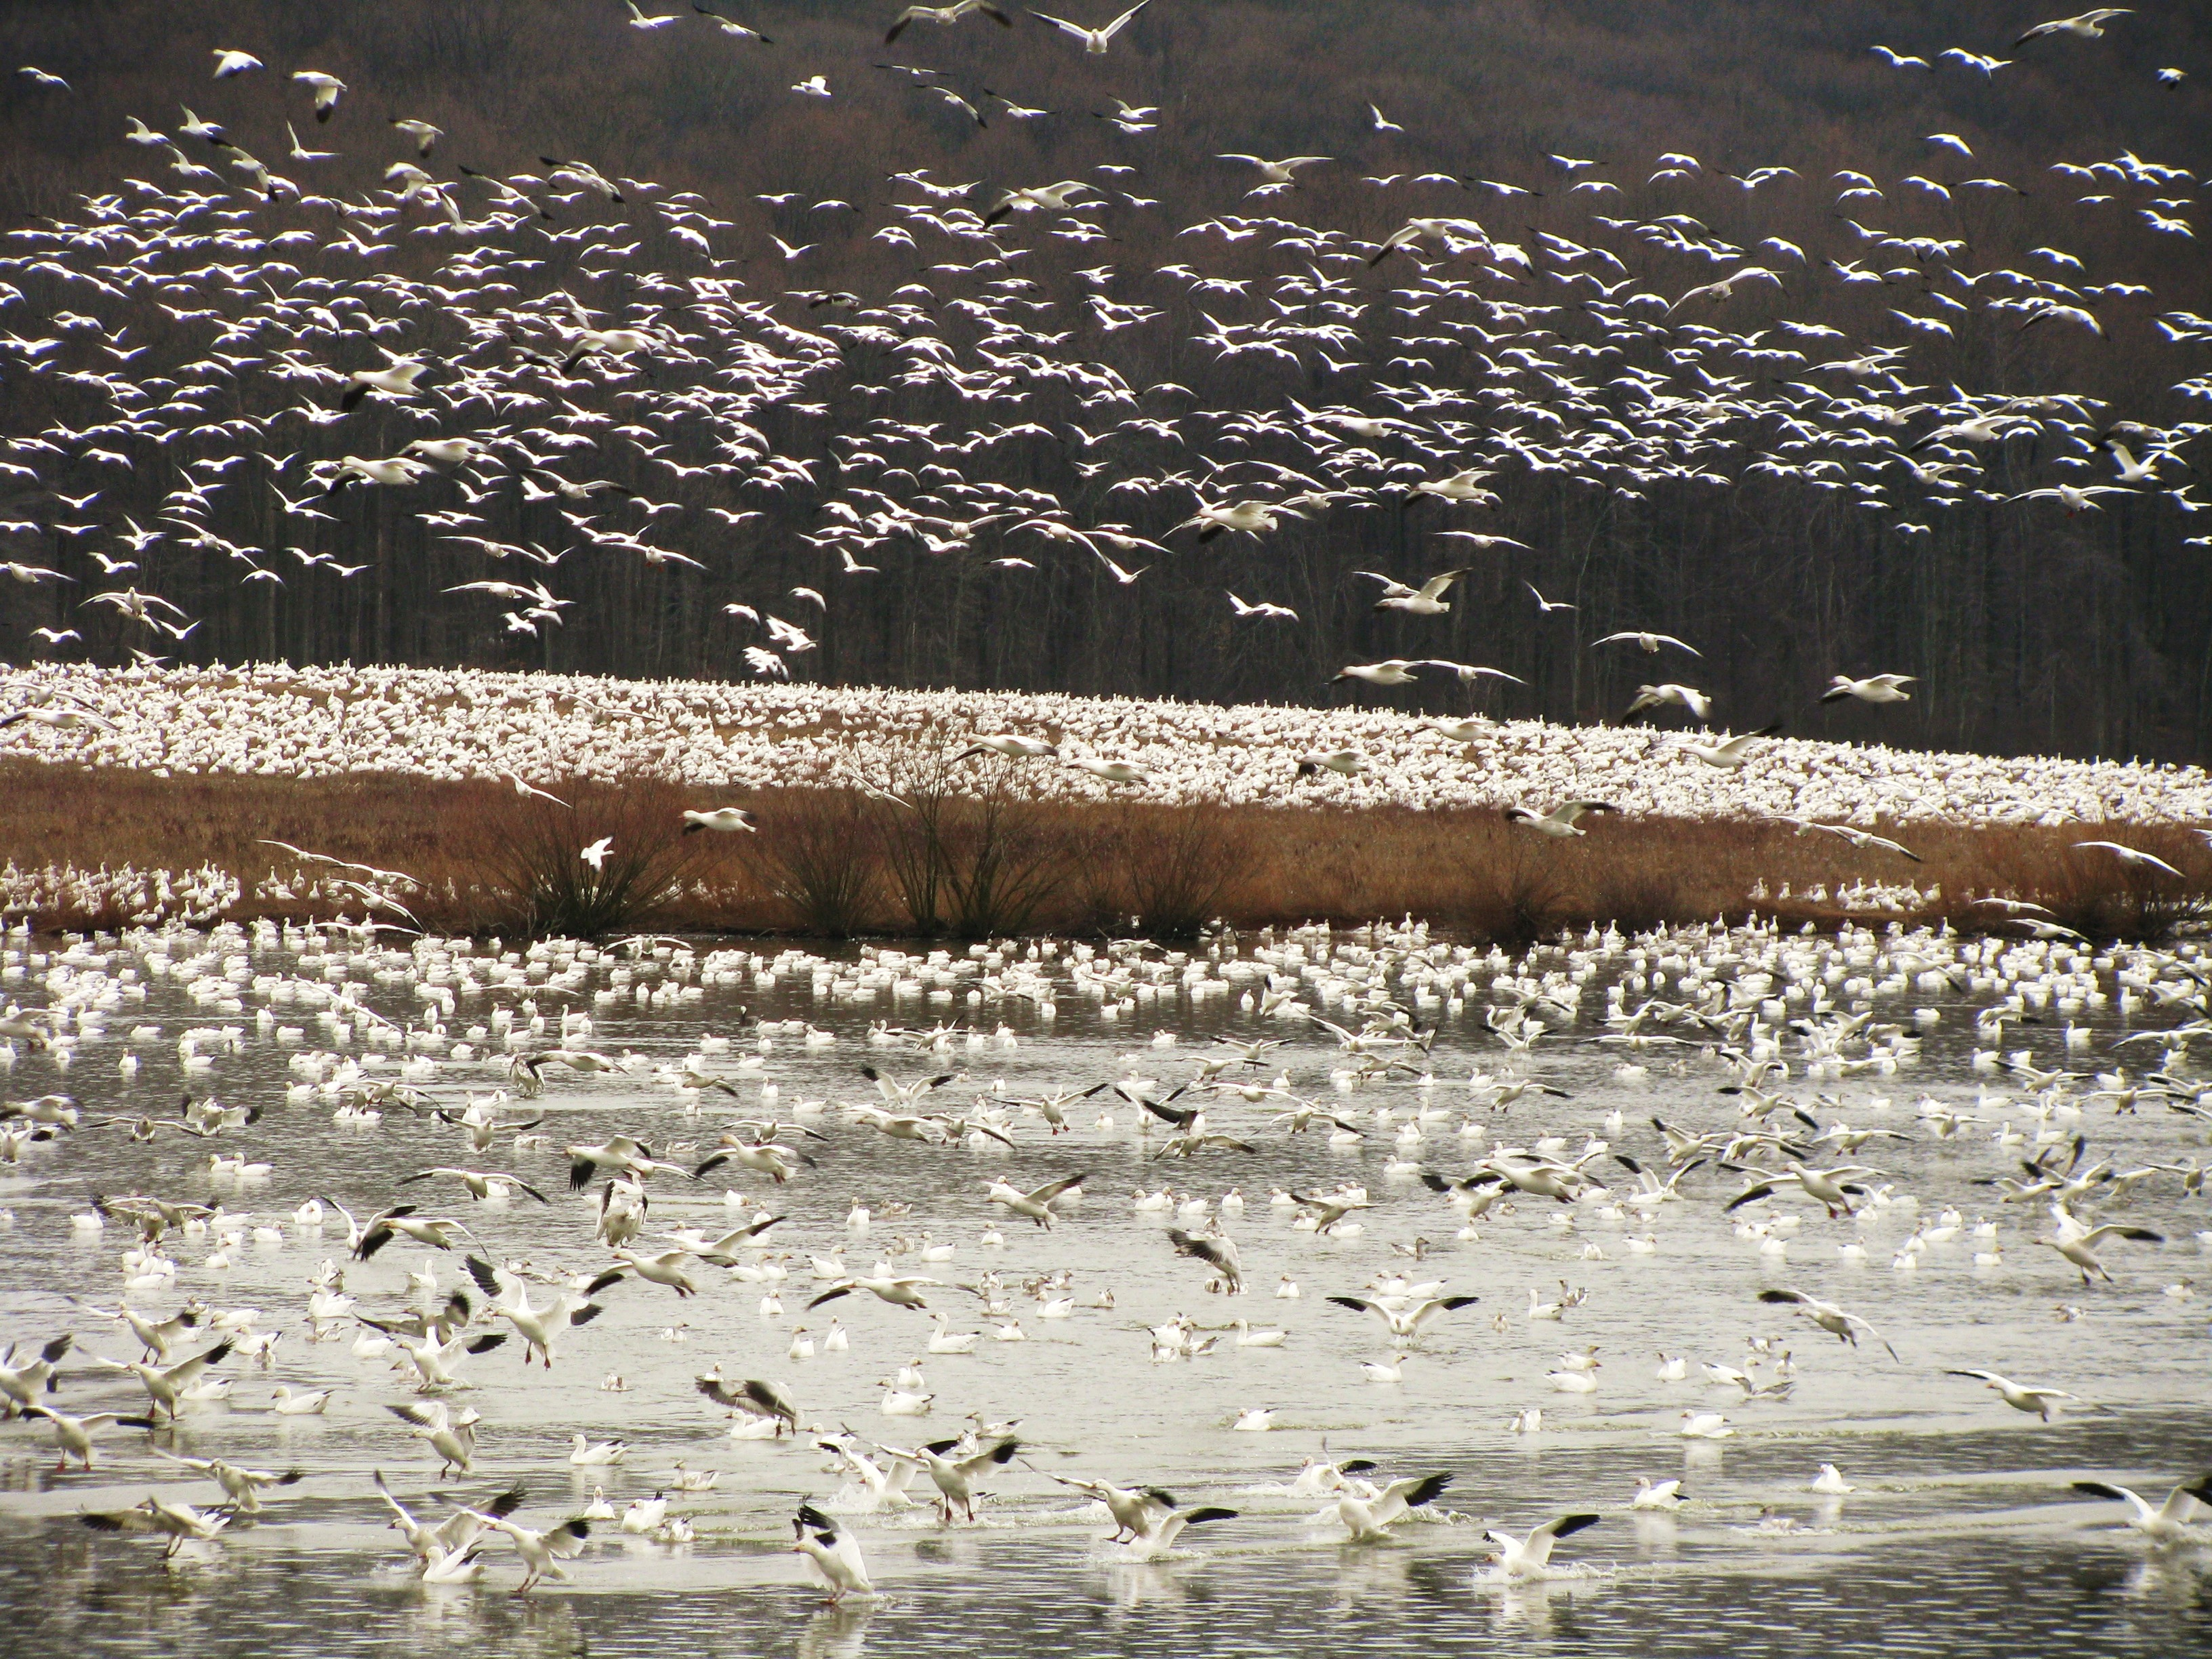 A blizzard of Snow Geese at Middle Creek Wildlife Area in Pennsylvania.